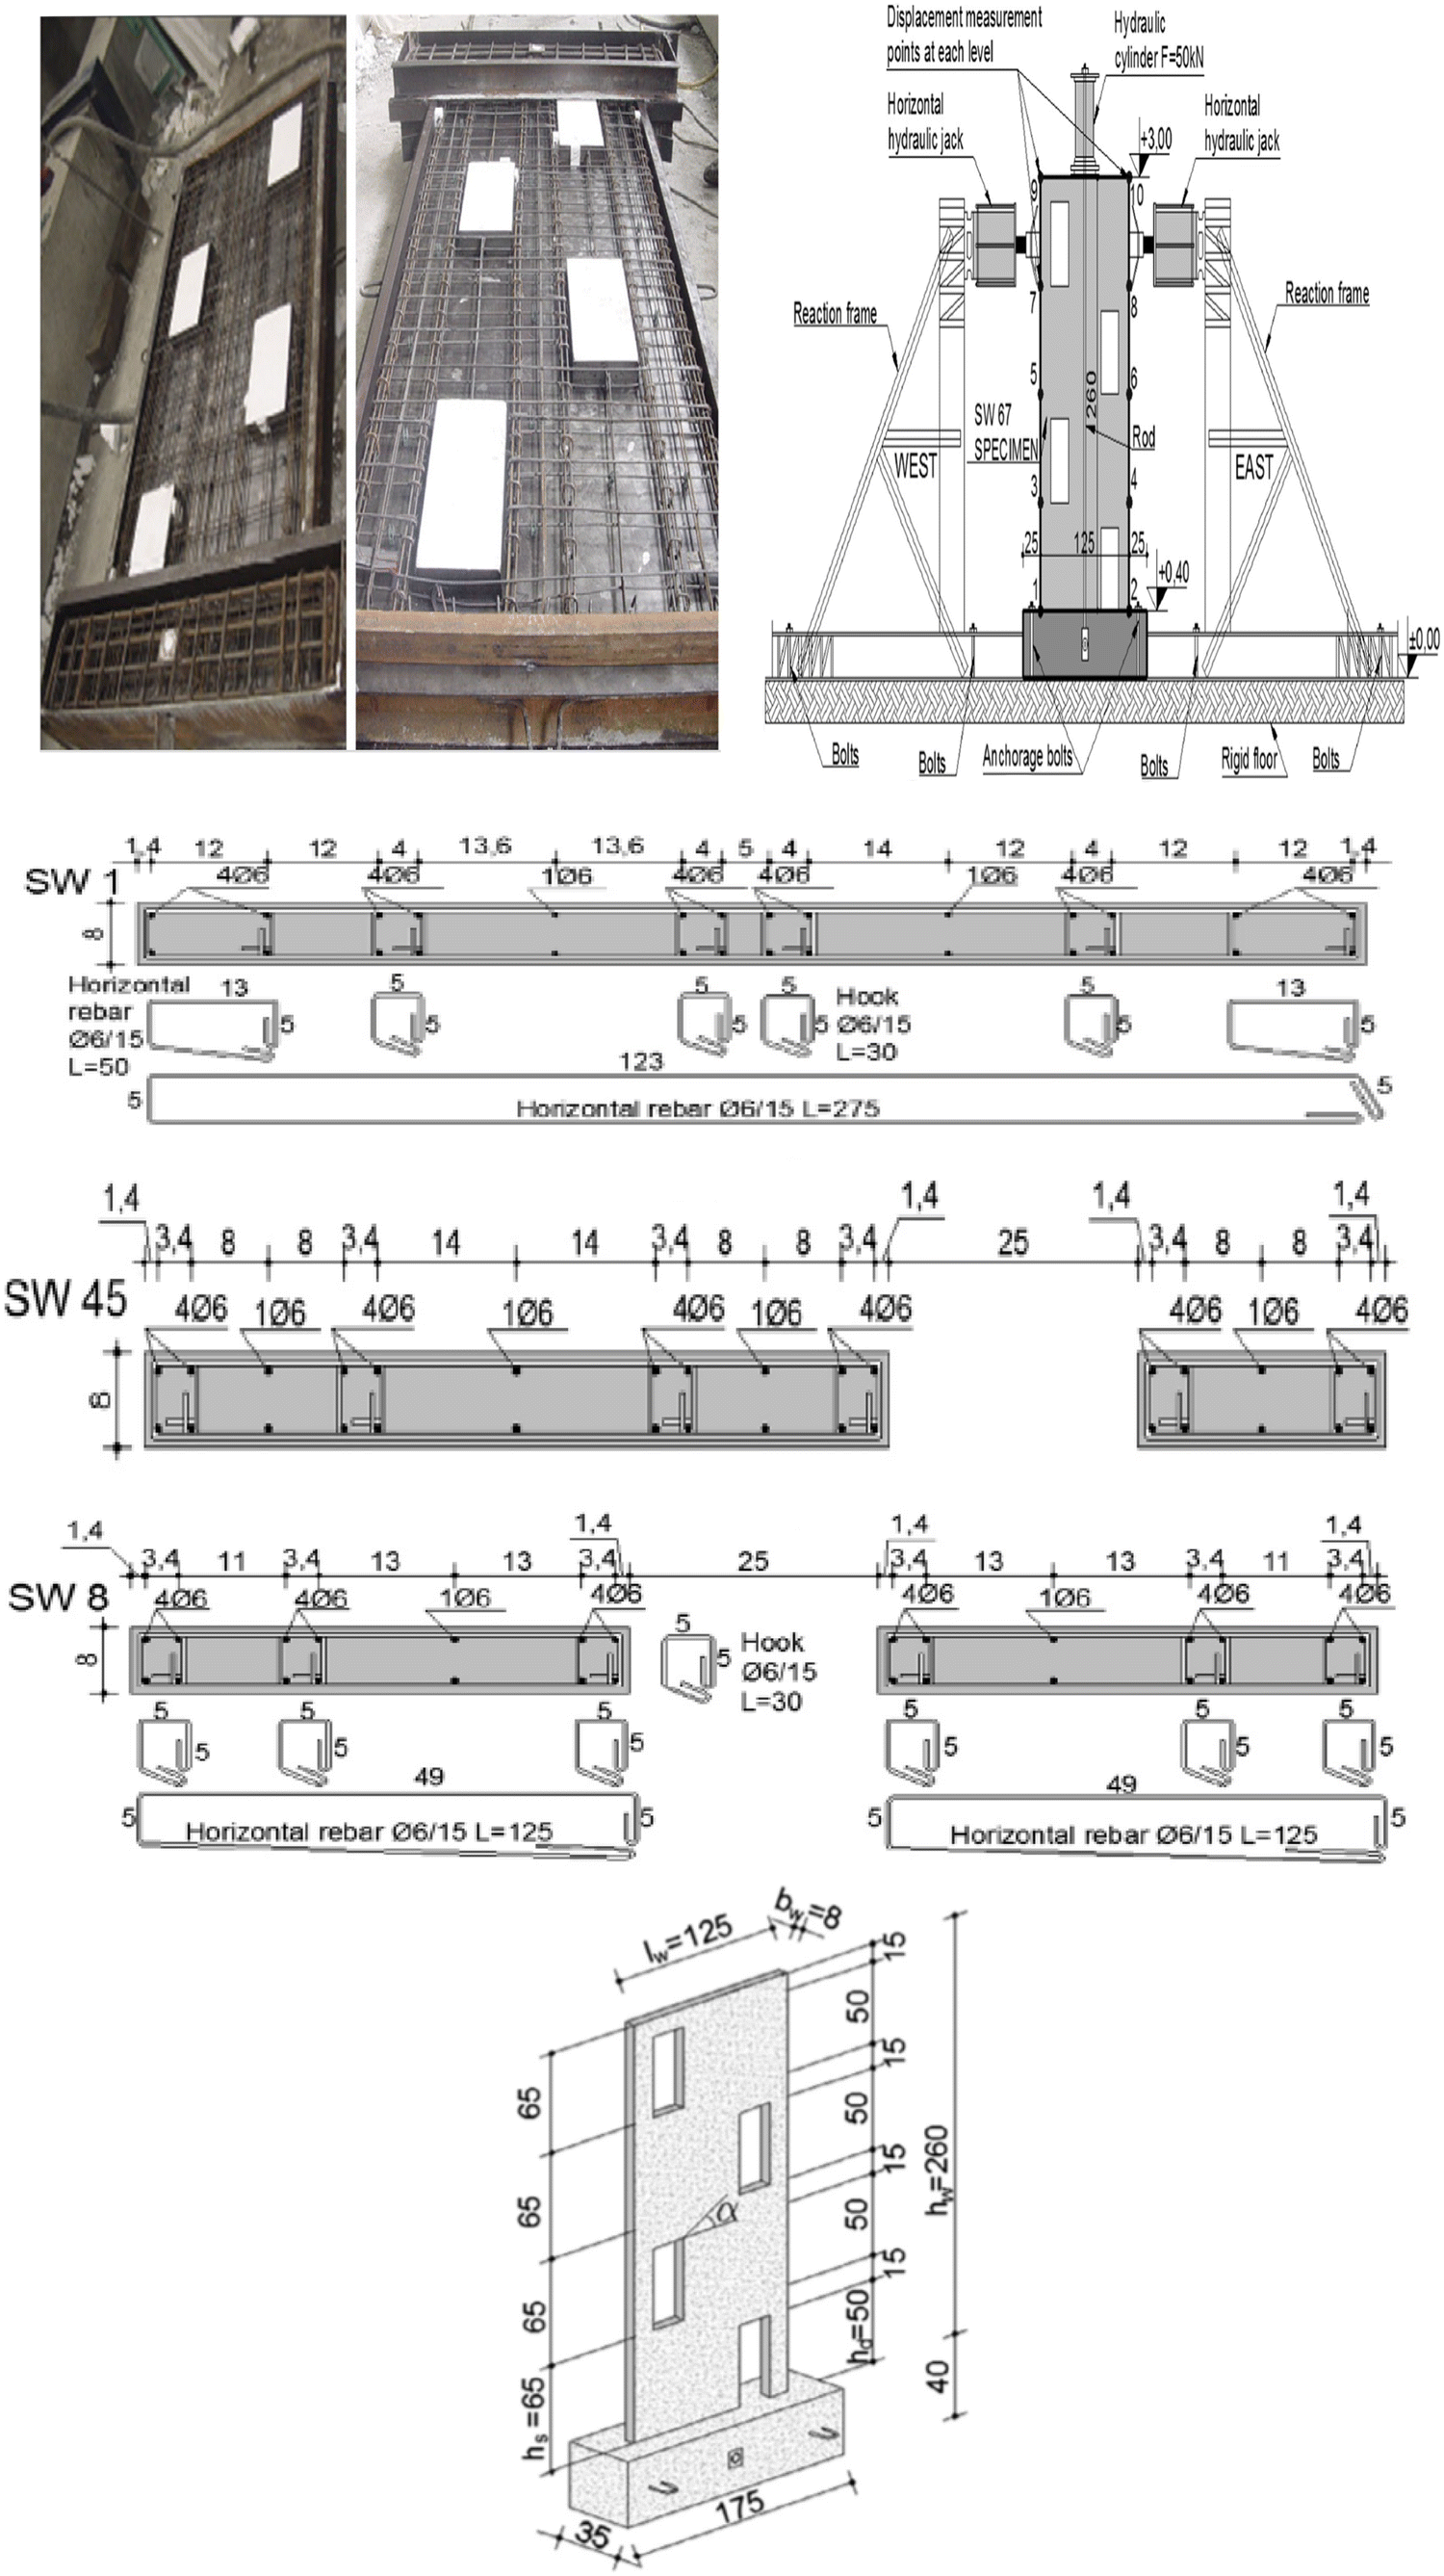 Strengthening of reinforced concrete shear walls with